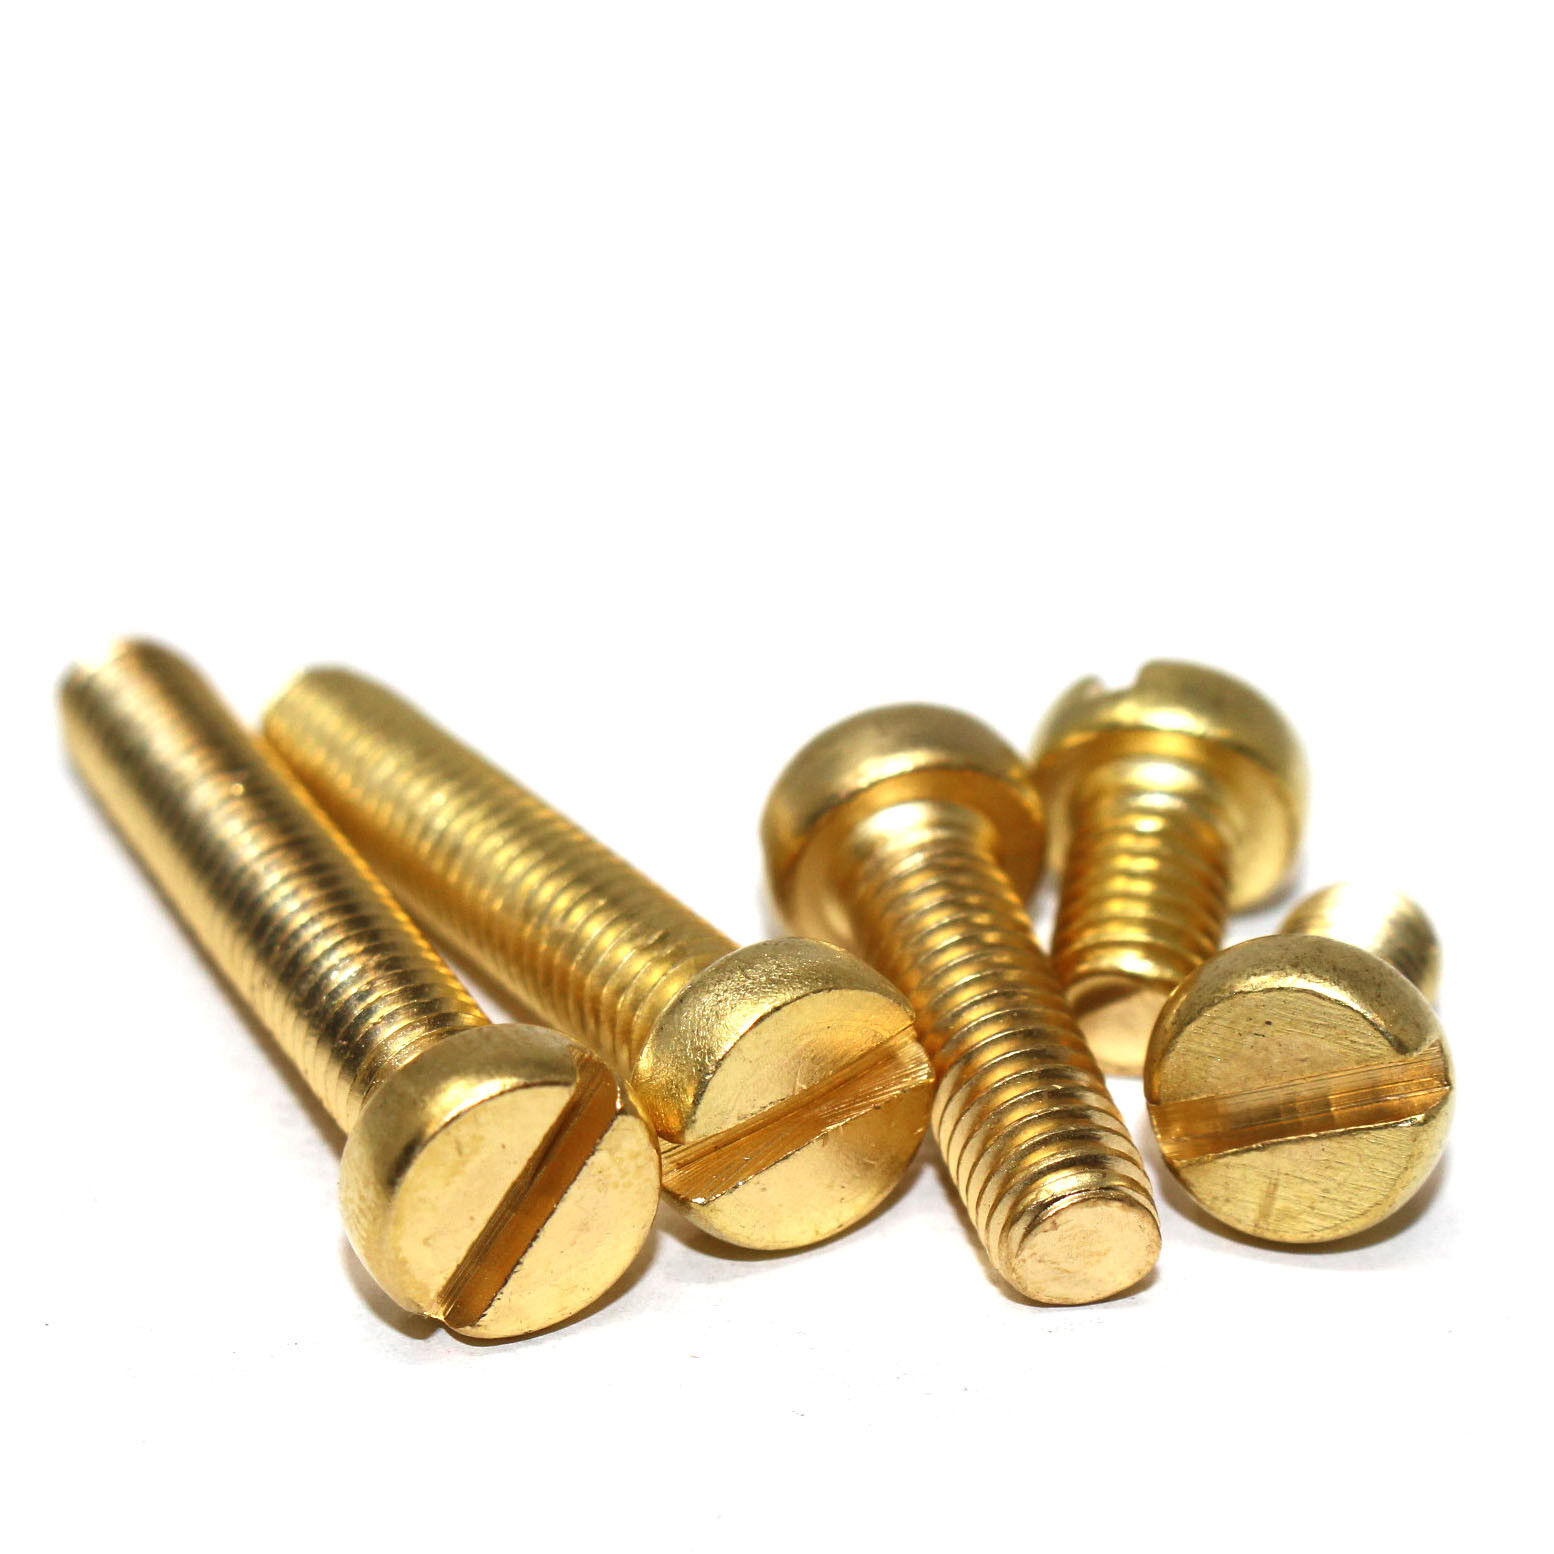 Picture of: M2 M2 5 M3 M4 M5 M6 Solid Brass Machine Screws Slotted Cheese Head Bolts Din84 Ebay